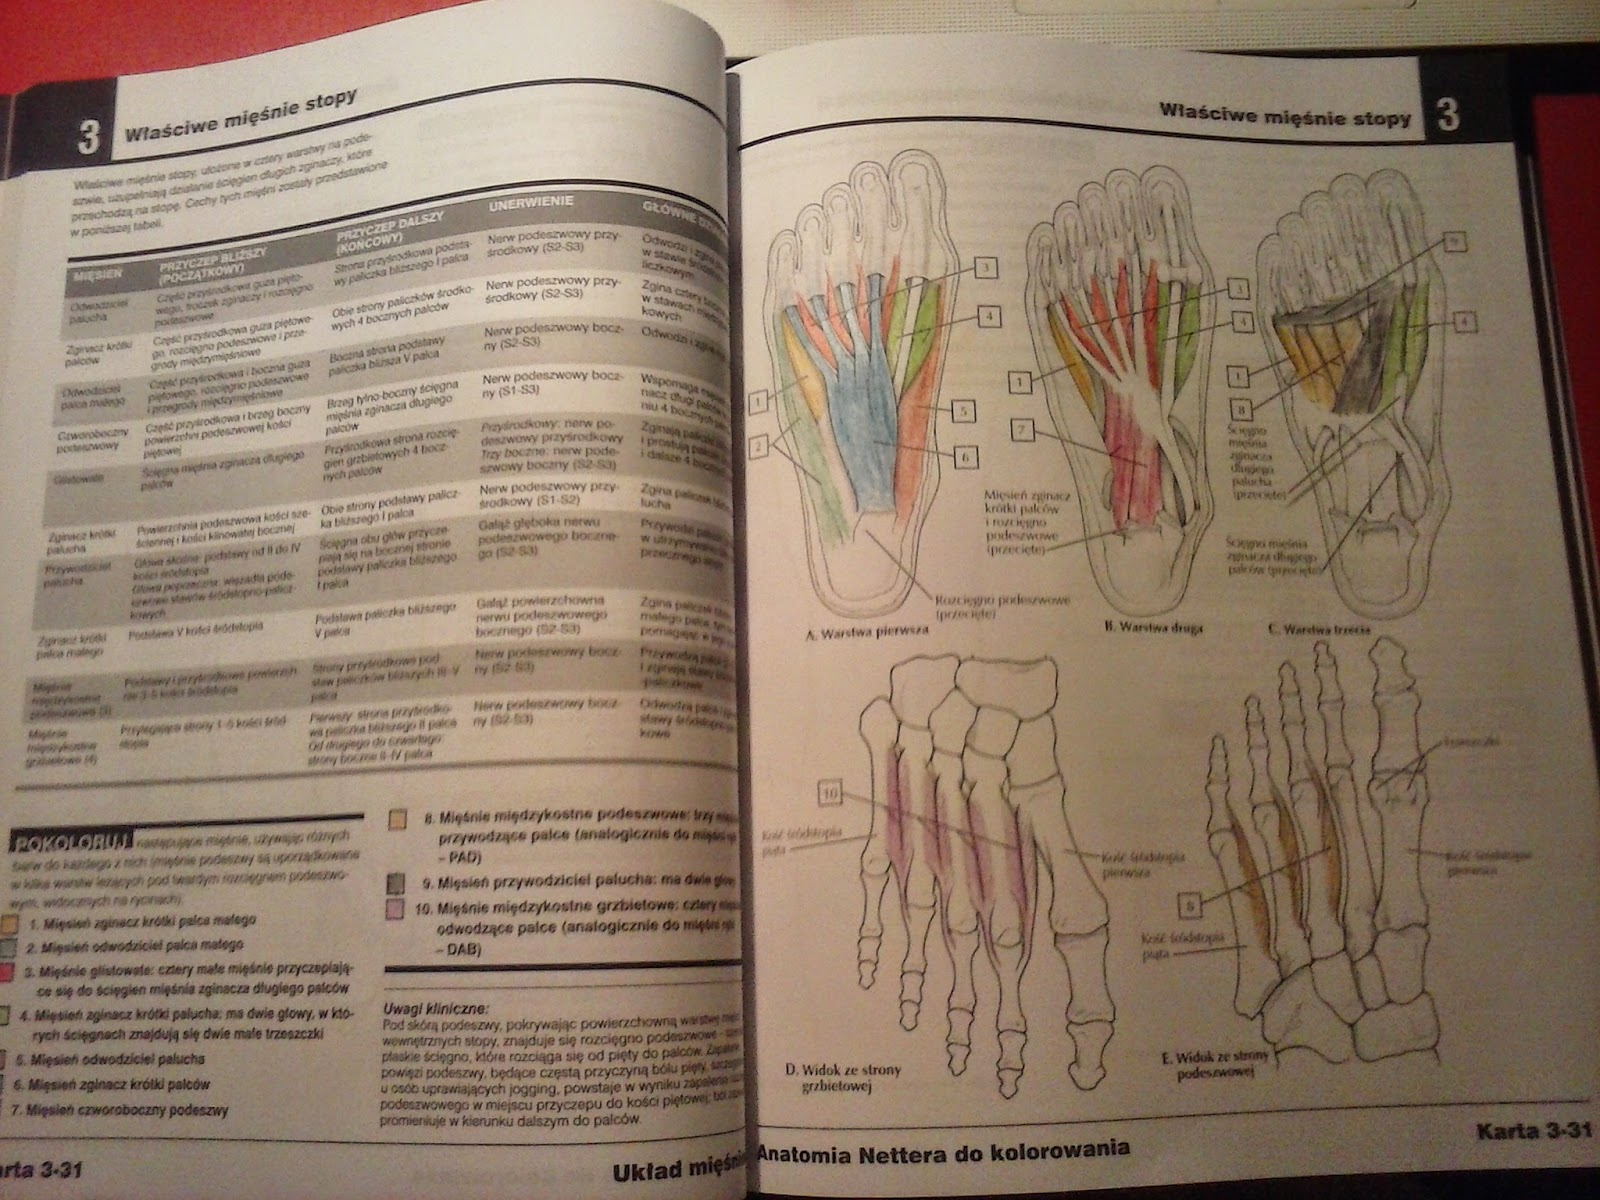 Anatomia Nettera do kolorwania